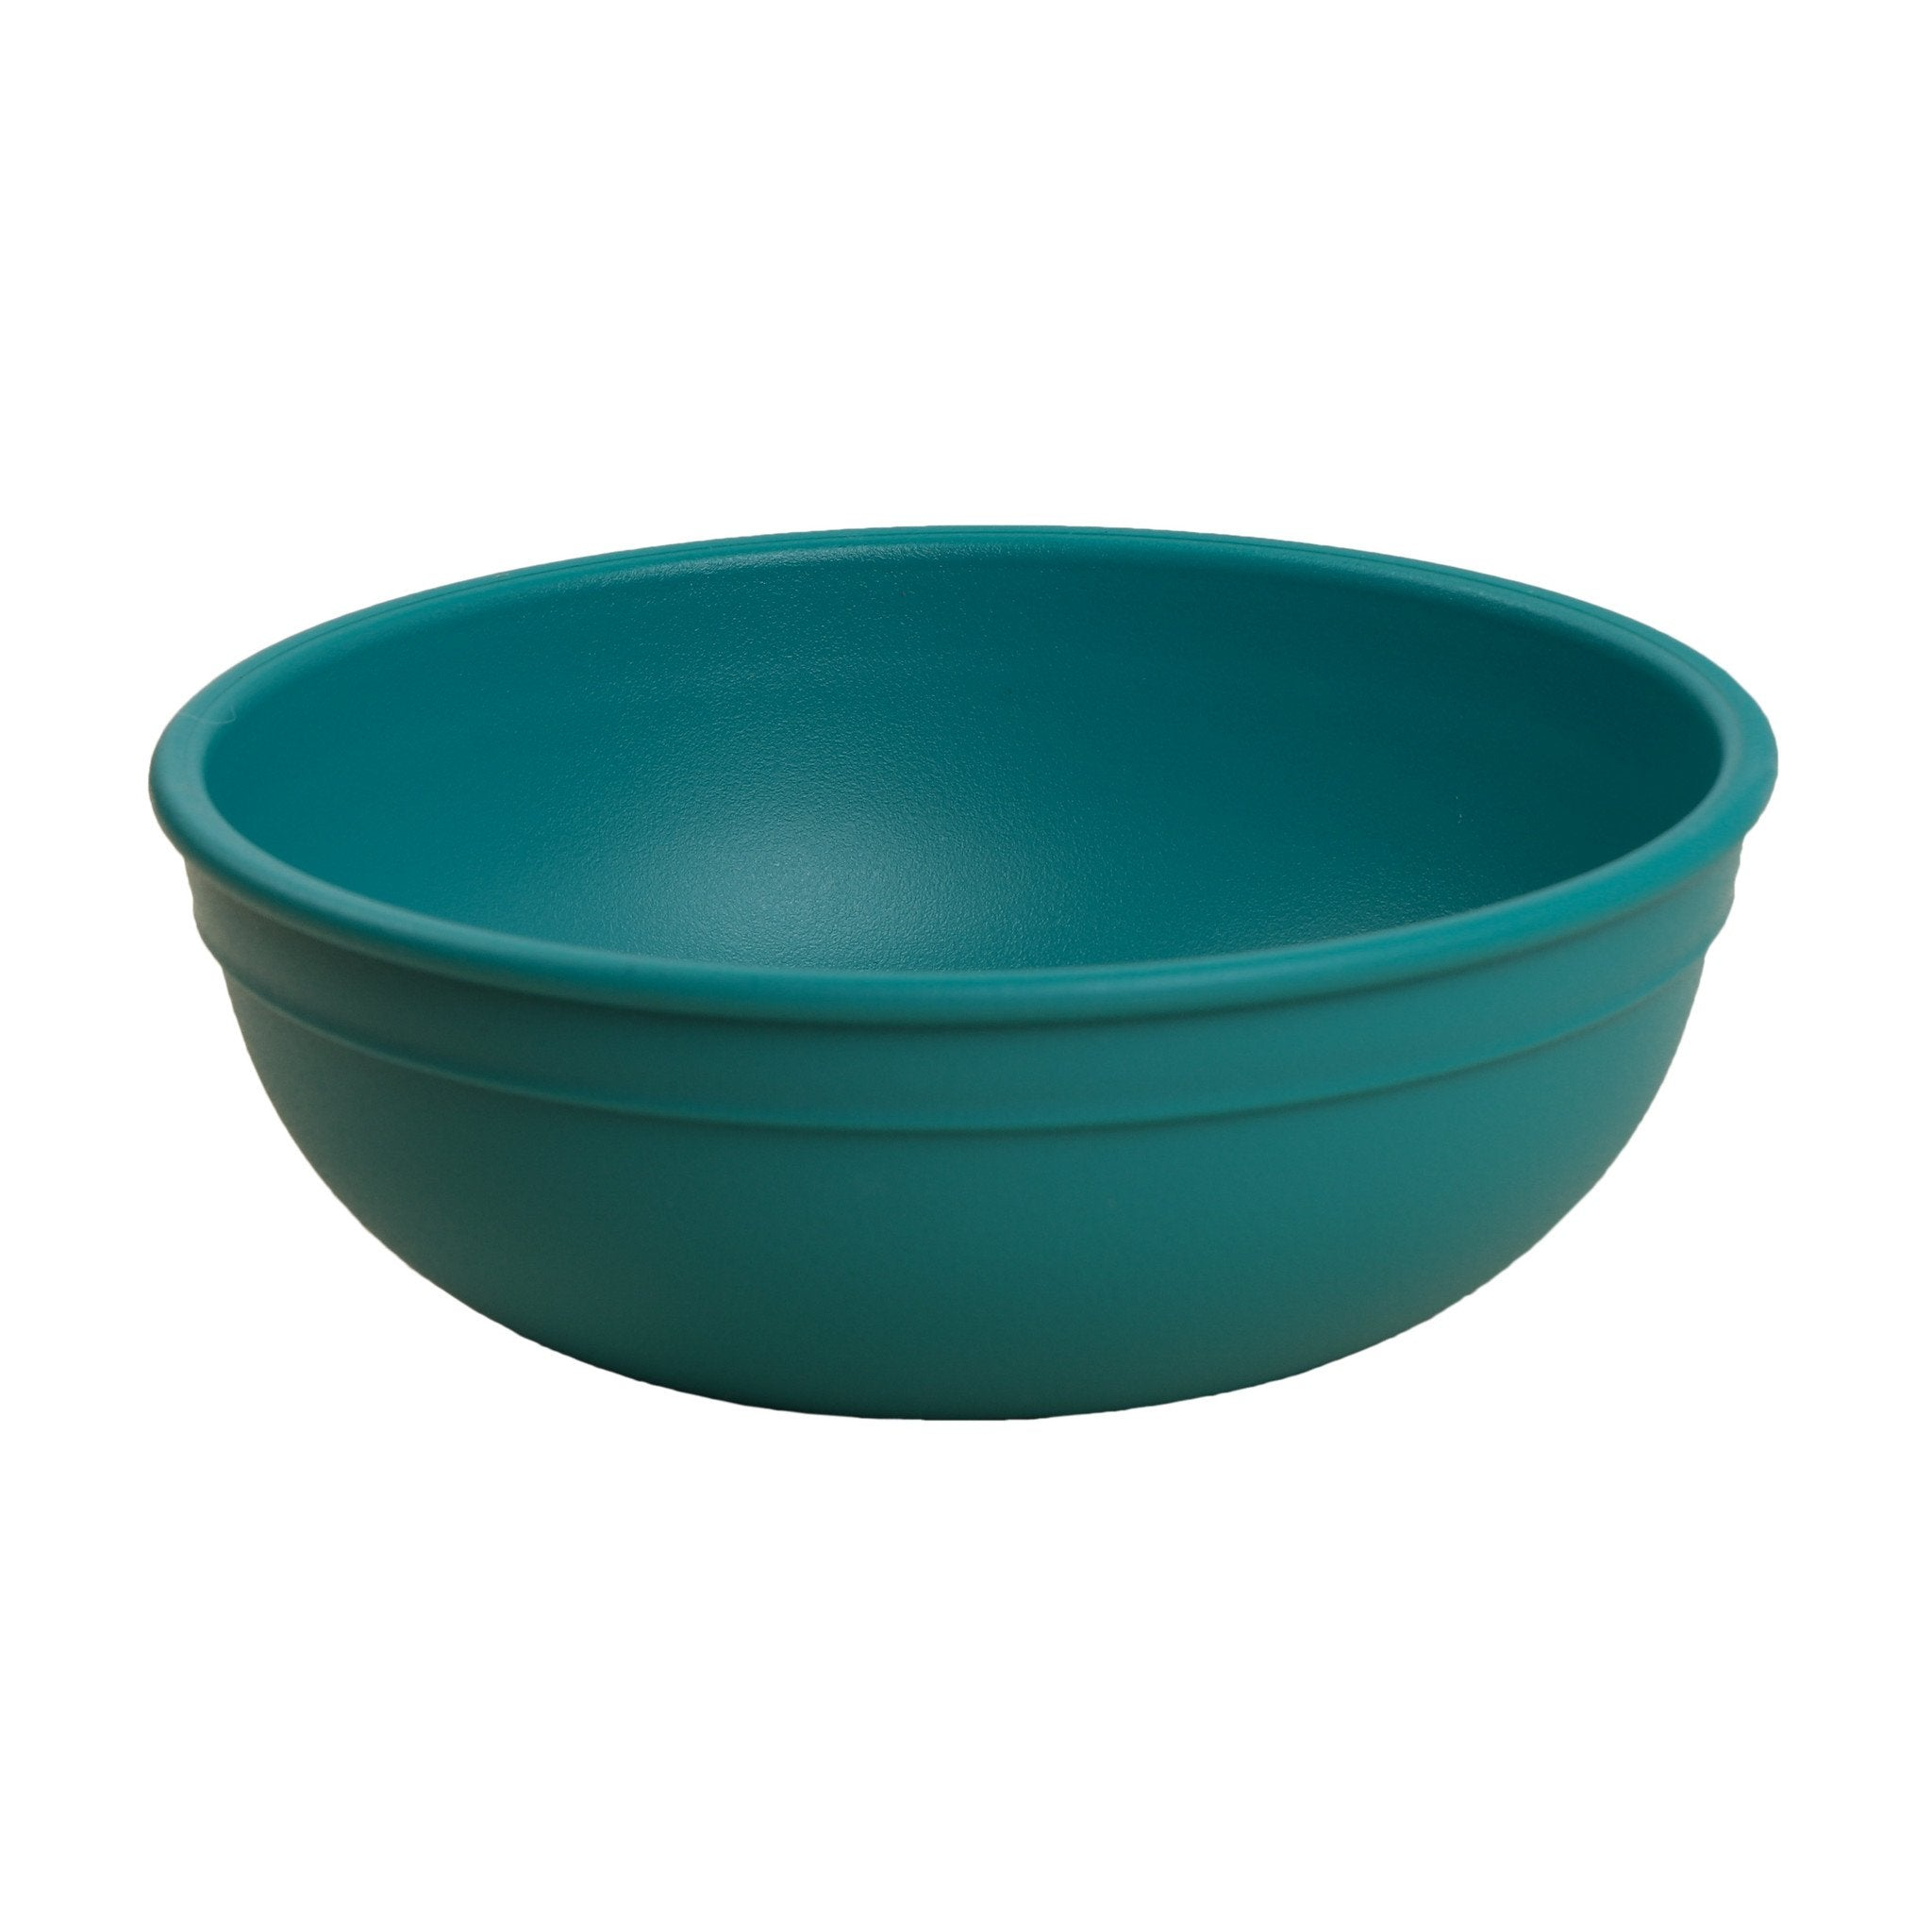 Replay Large Bowl Replay Dinnerware Teal at Little Earth Nest Eco Shop